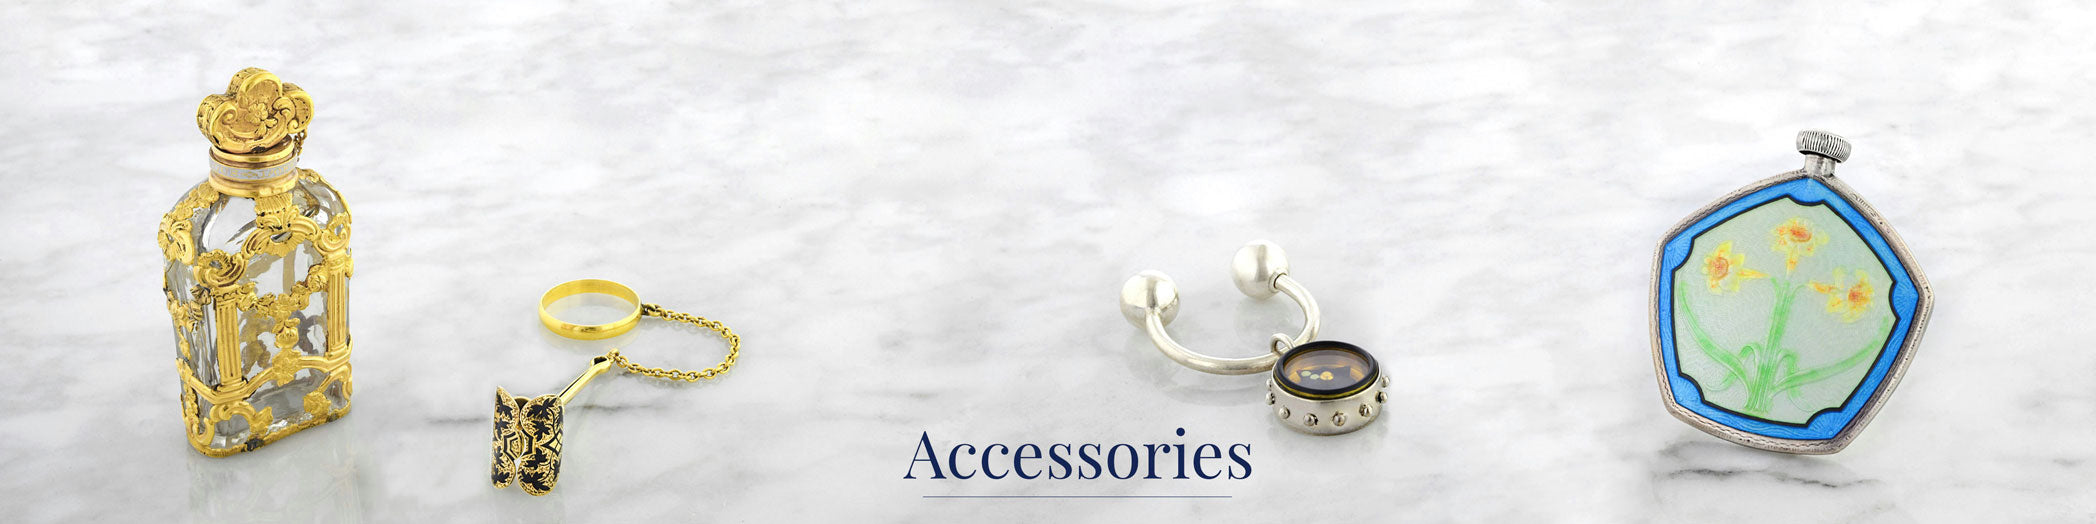 1b63825ec Discover Rare Antique, Estate, And Vintage Cufflinks, Pins, & Other Jeweled  Accessories